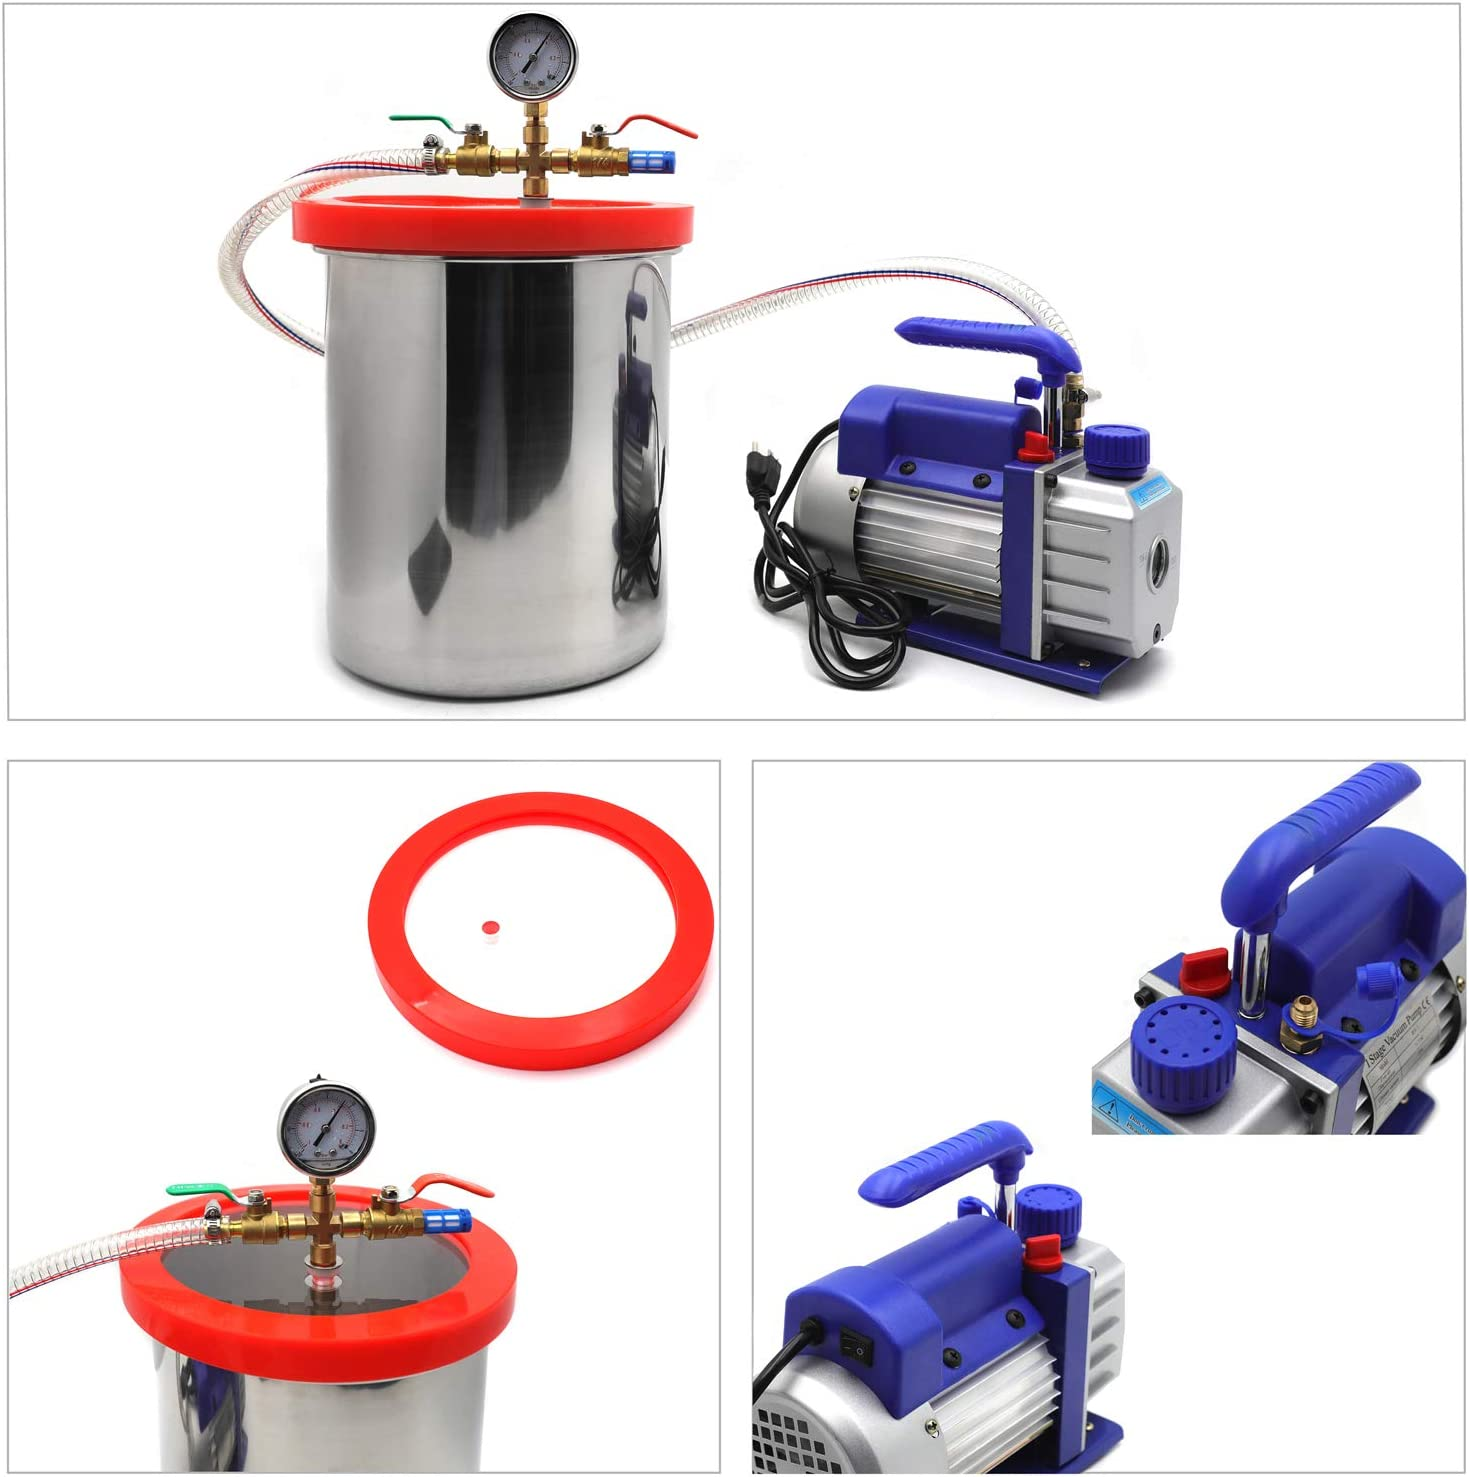 XKMT- 3 Gallon Vacuum Chamber Kit With 3CFM Degassing Silicone Single Stage Pump Air AC Kit [P/N: ET-TOOL009-RAW]